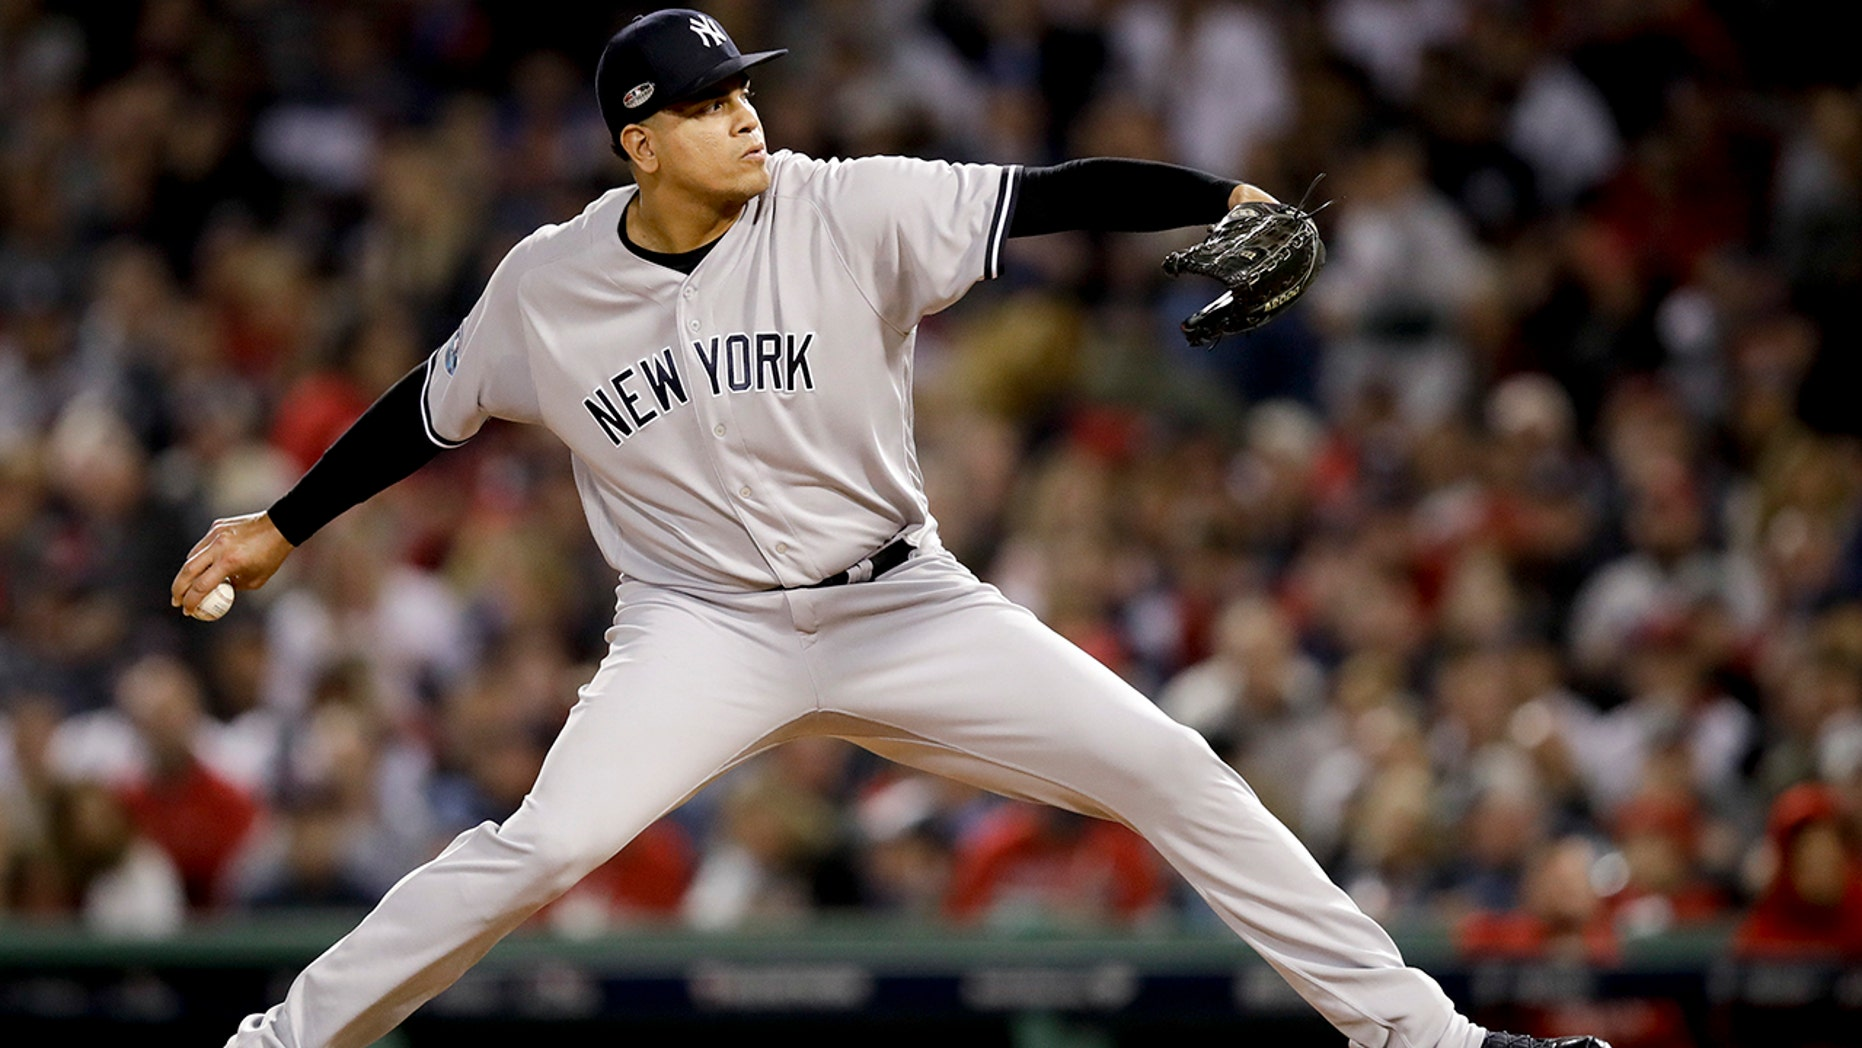 FILE - In this Oct. 6, 2018, file photo, New York Yankees relief pitcher Dellin Betances throws against the Boston Red Sox during the sixth inning of Game 2 of a baseball American League Division Series in Boston. Betances' season appears over after just eight pitches. The Yankees say the reliever partially tore the Achilles tendon in his left foot when he hopped on the mound after striking out Brandon Drury, the second and final batter he faced in his season debut at Toronto. (AP Photo/Charles Krupa, File)